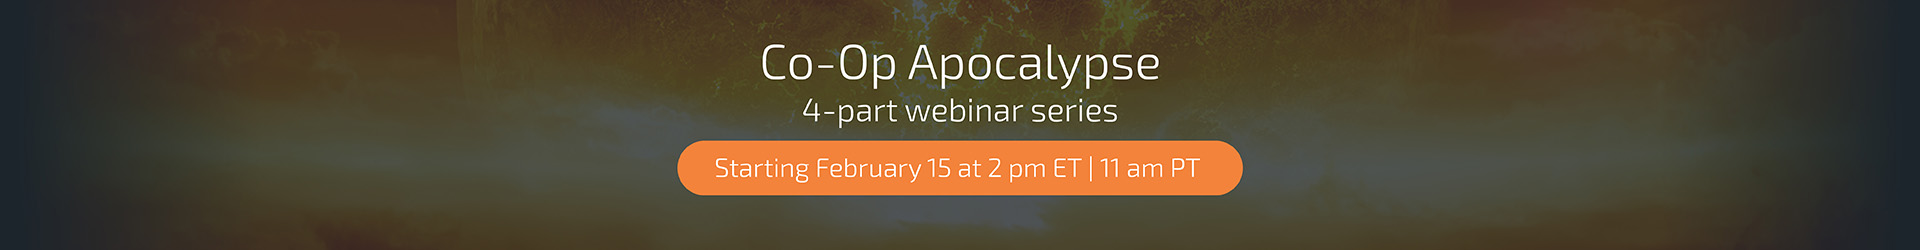 The Co-Op Apocalypse - Starting February 15th